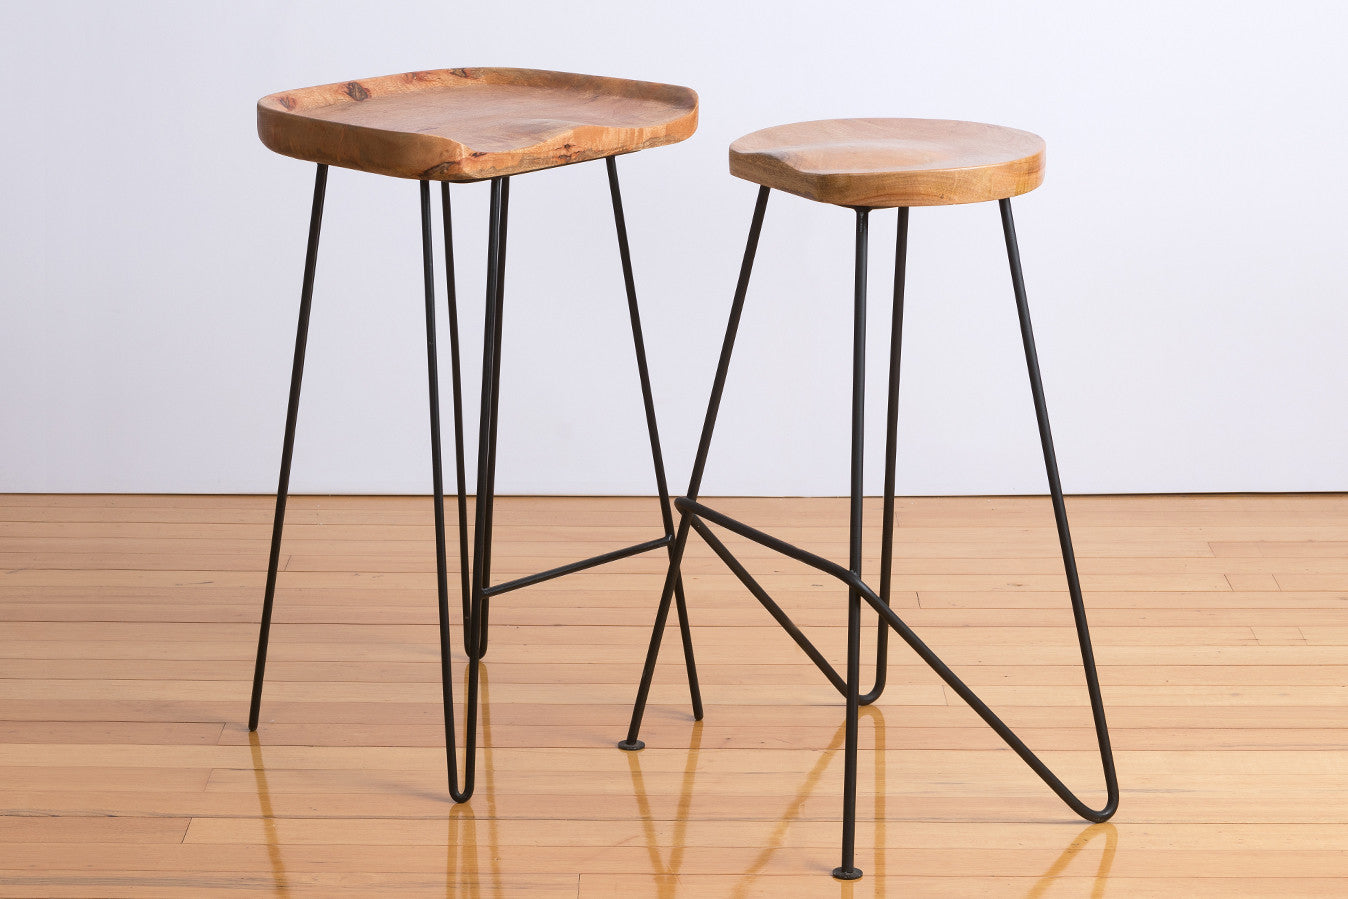 Industry industrial powder coated steel iron base solid timber seat bar stools